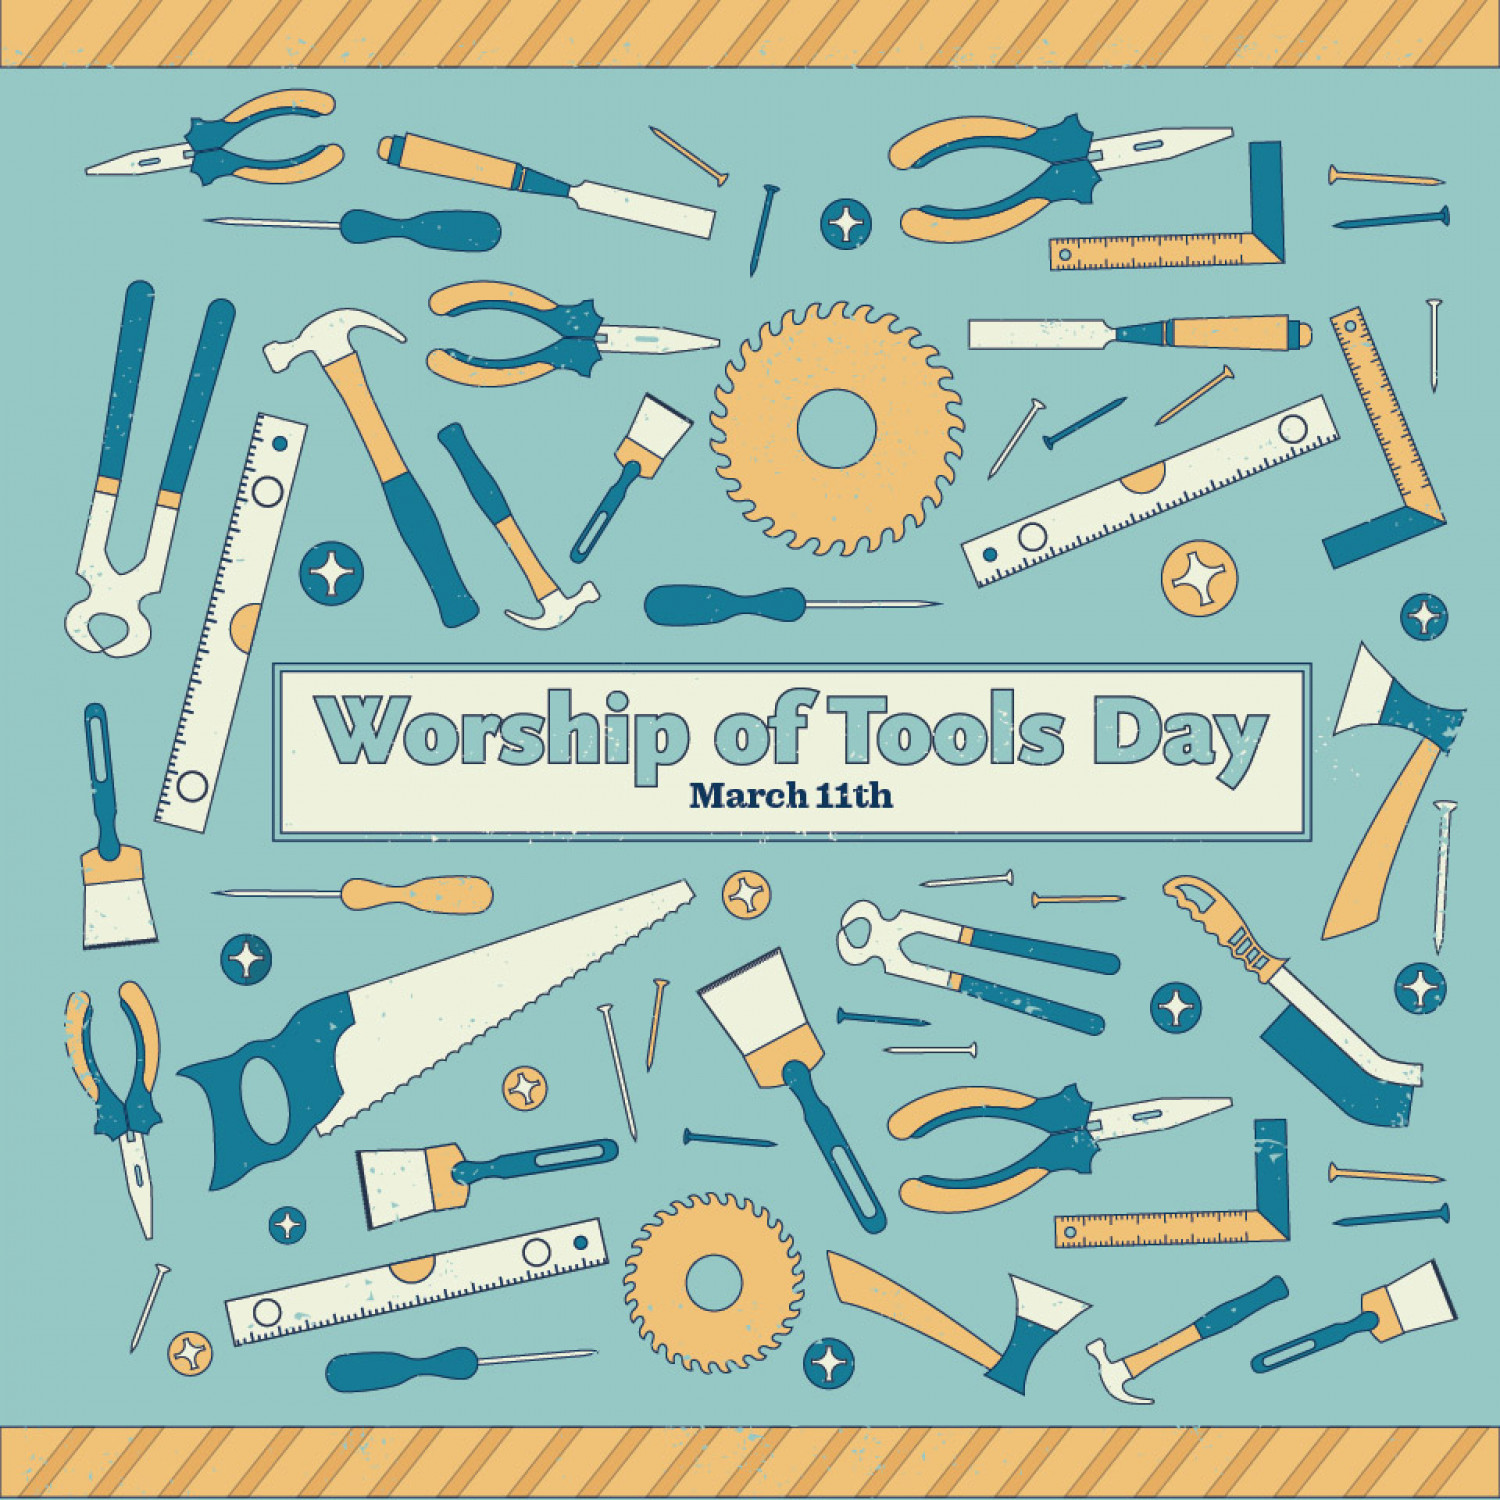 Worship of Tools Day Infographic